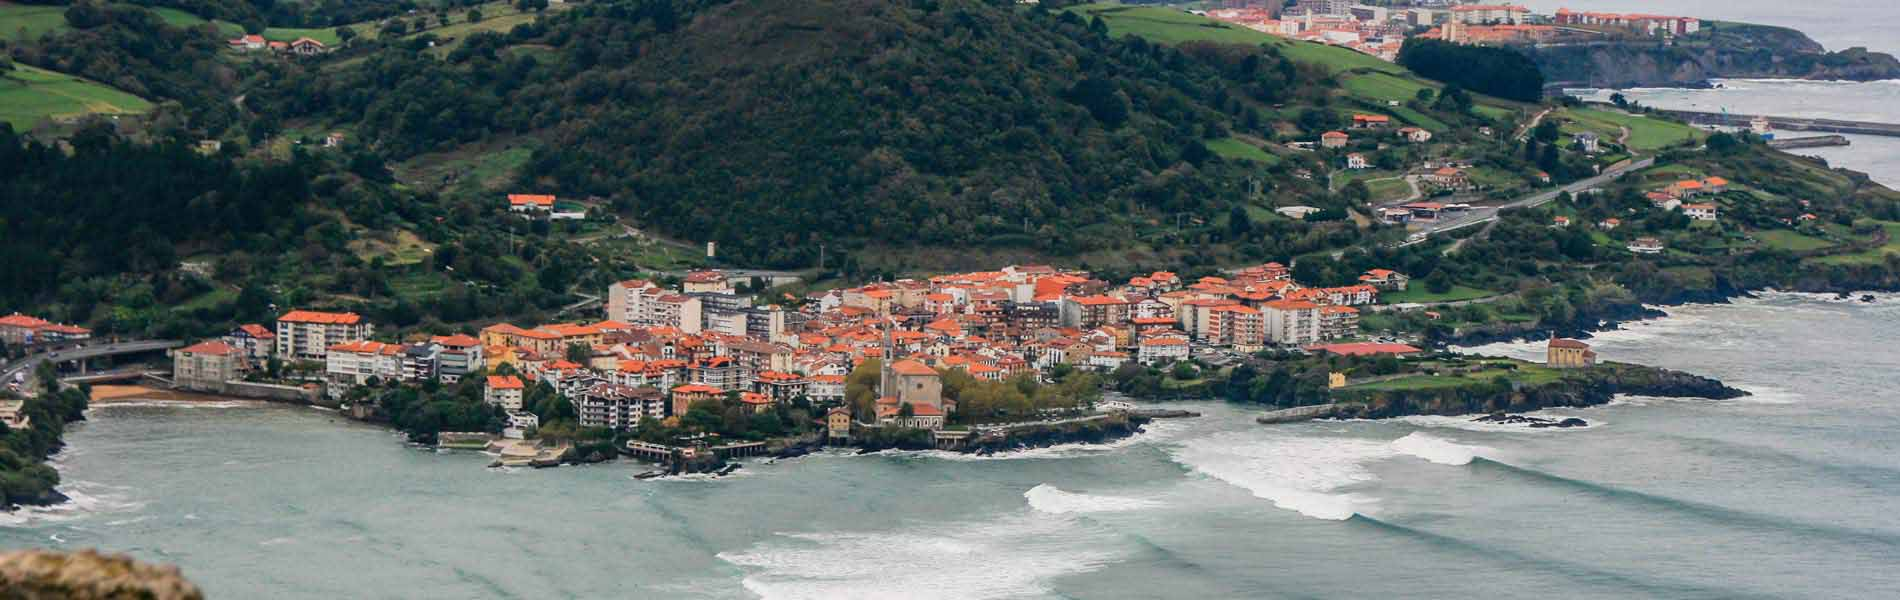 Mundaka-panoramica-2